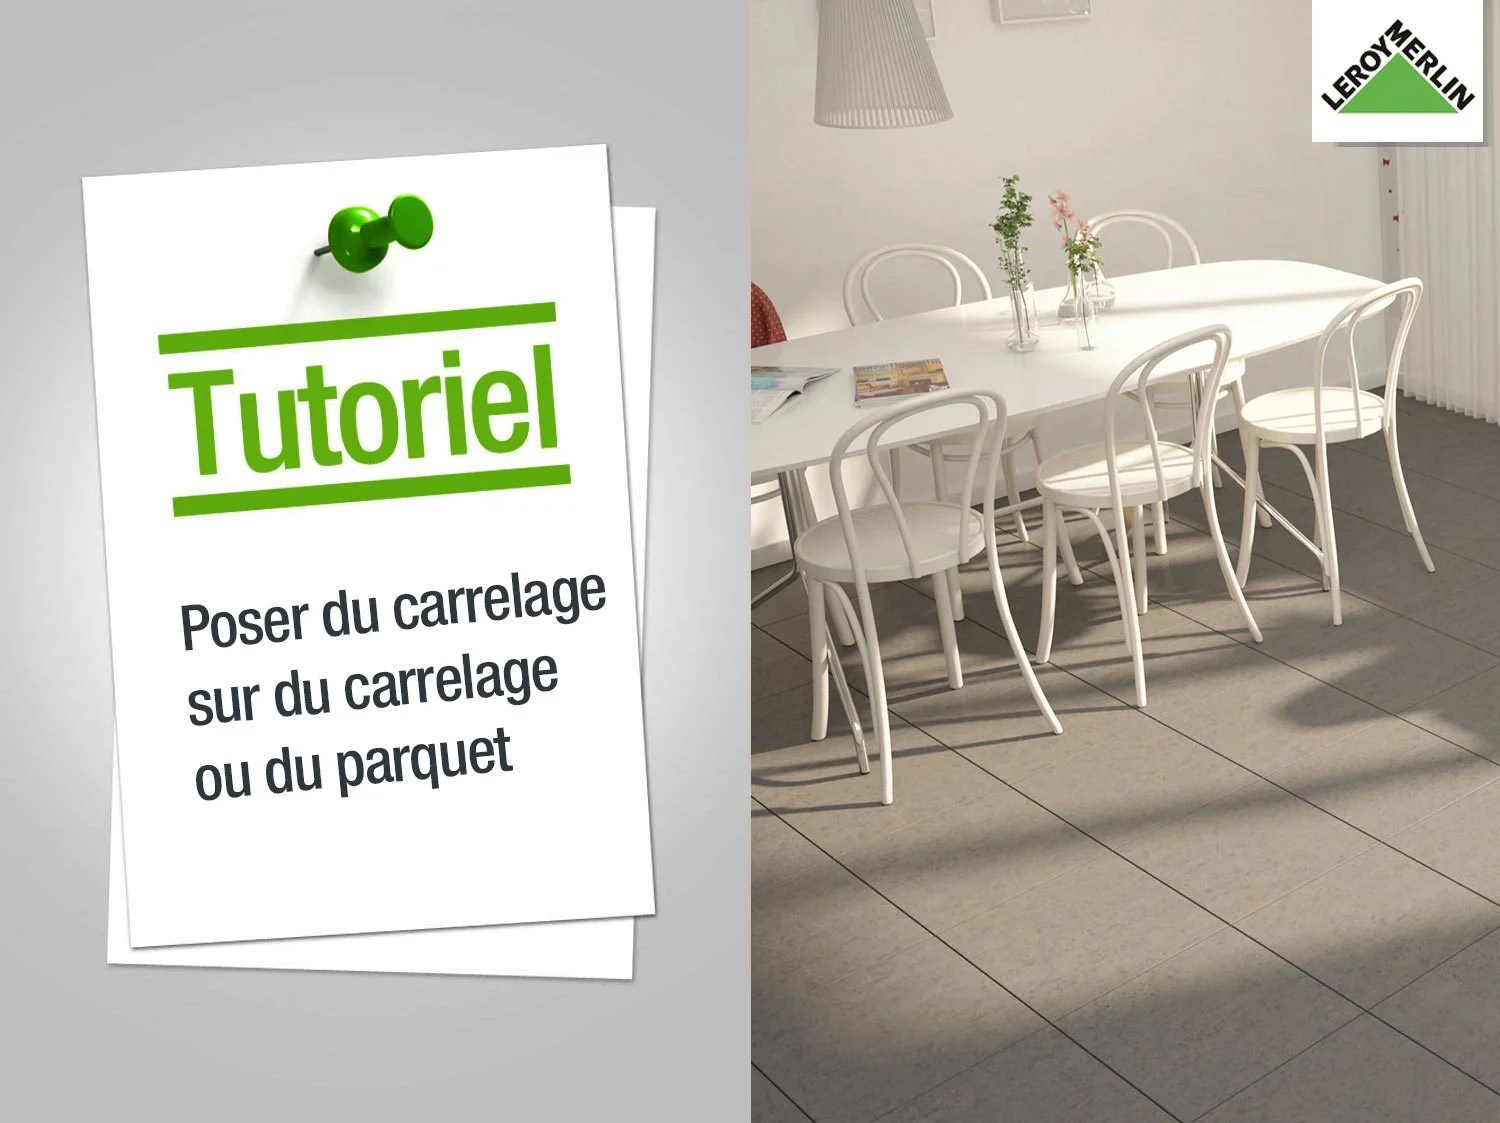 Pose Carrelage Exterieur Video Comment Poser Du Carrelage Sur Du Carrelage Ou Du Parquet